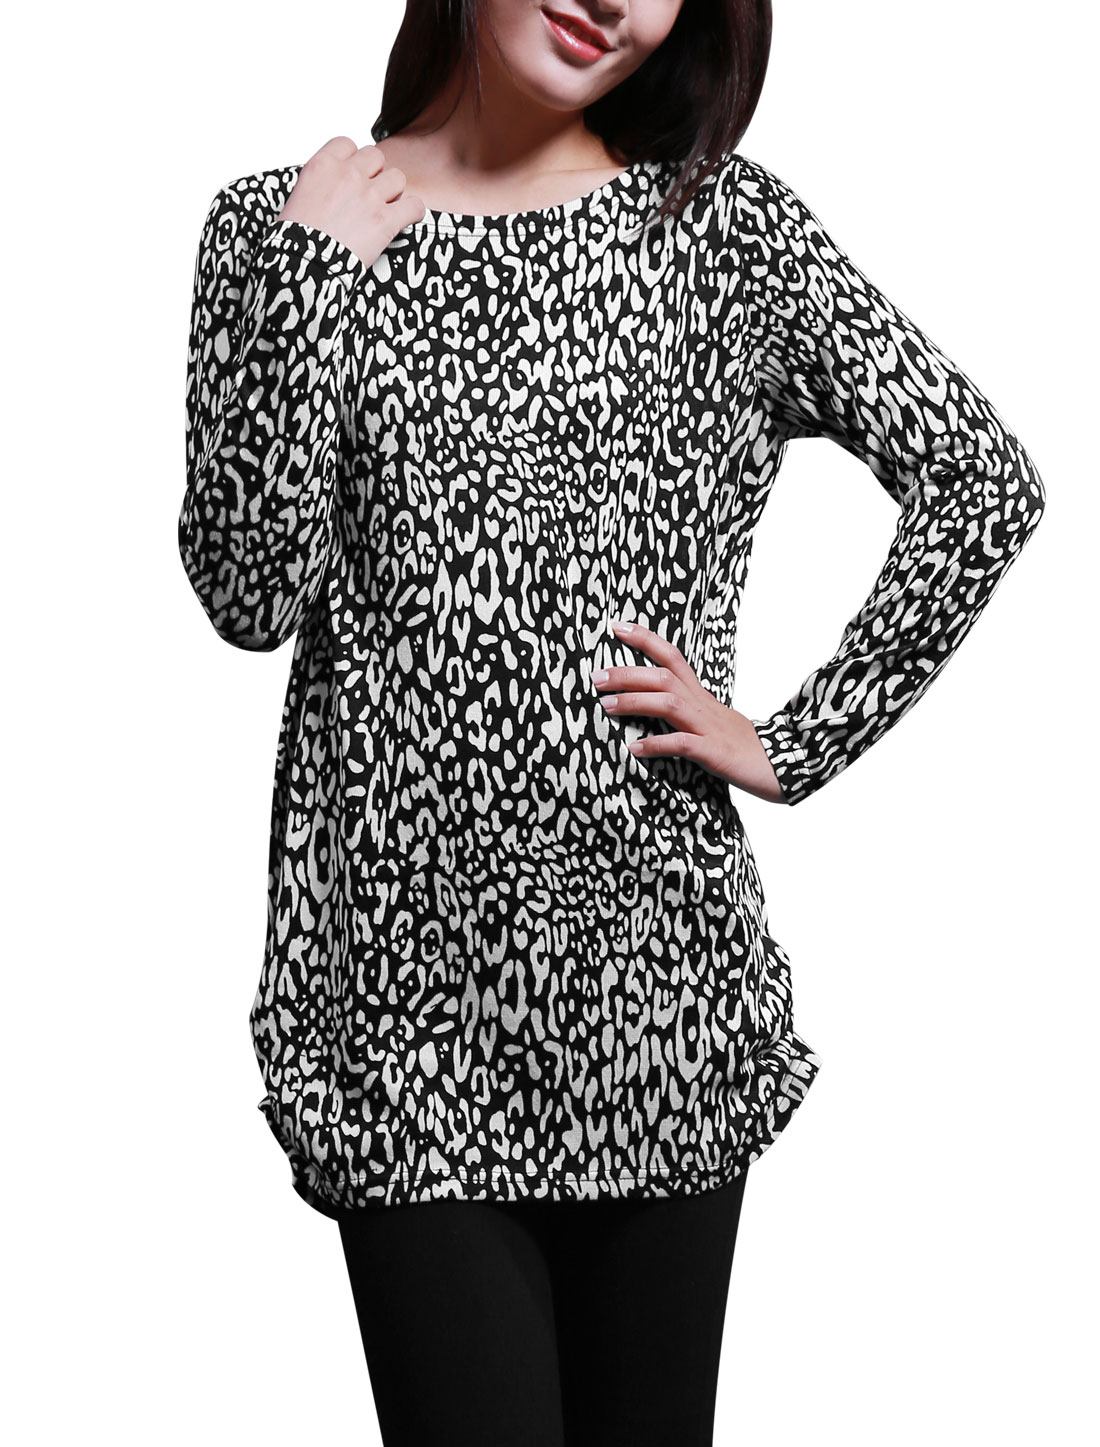 Women Long Sleeves All Over Leopard Print Tunic Knit Shirt Black White XS